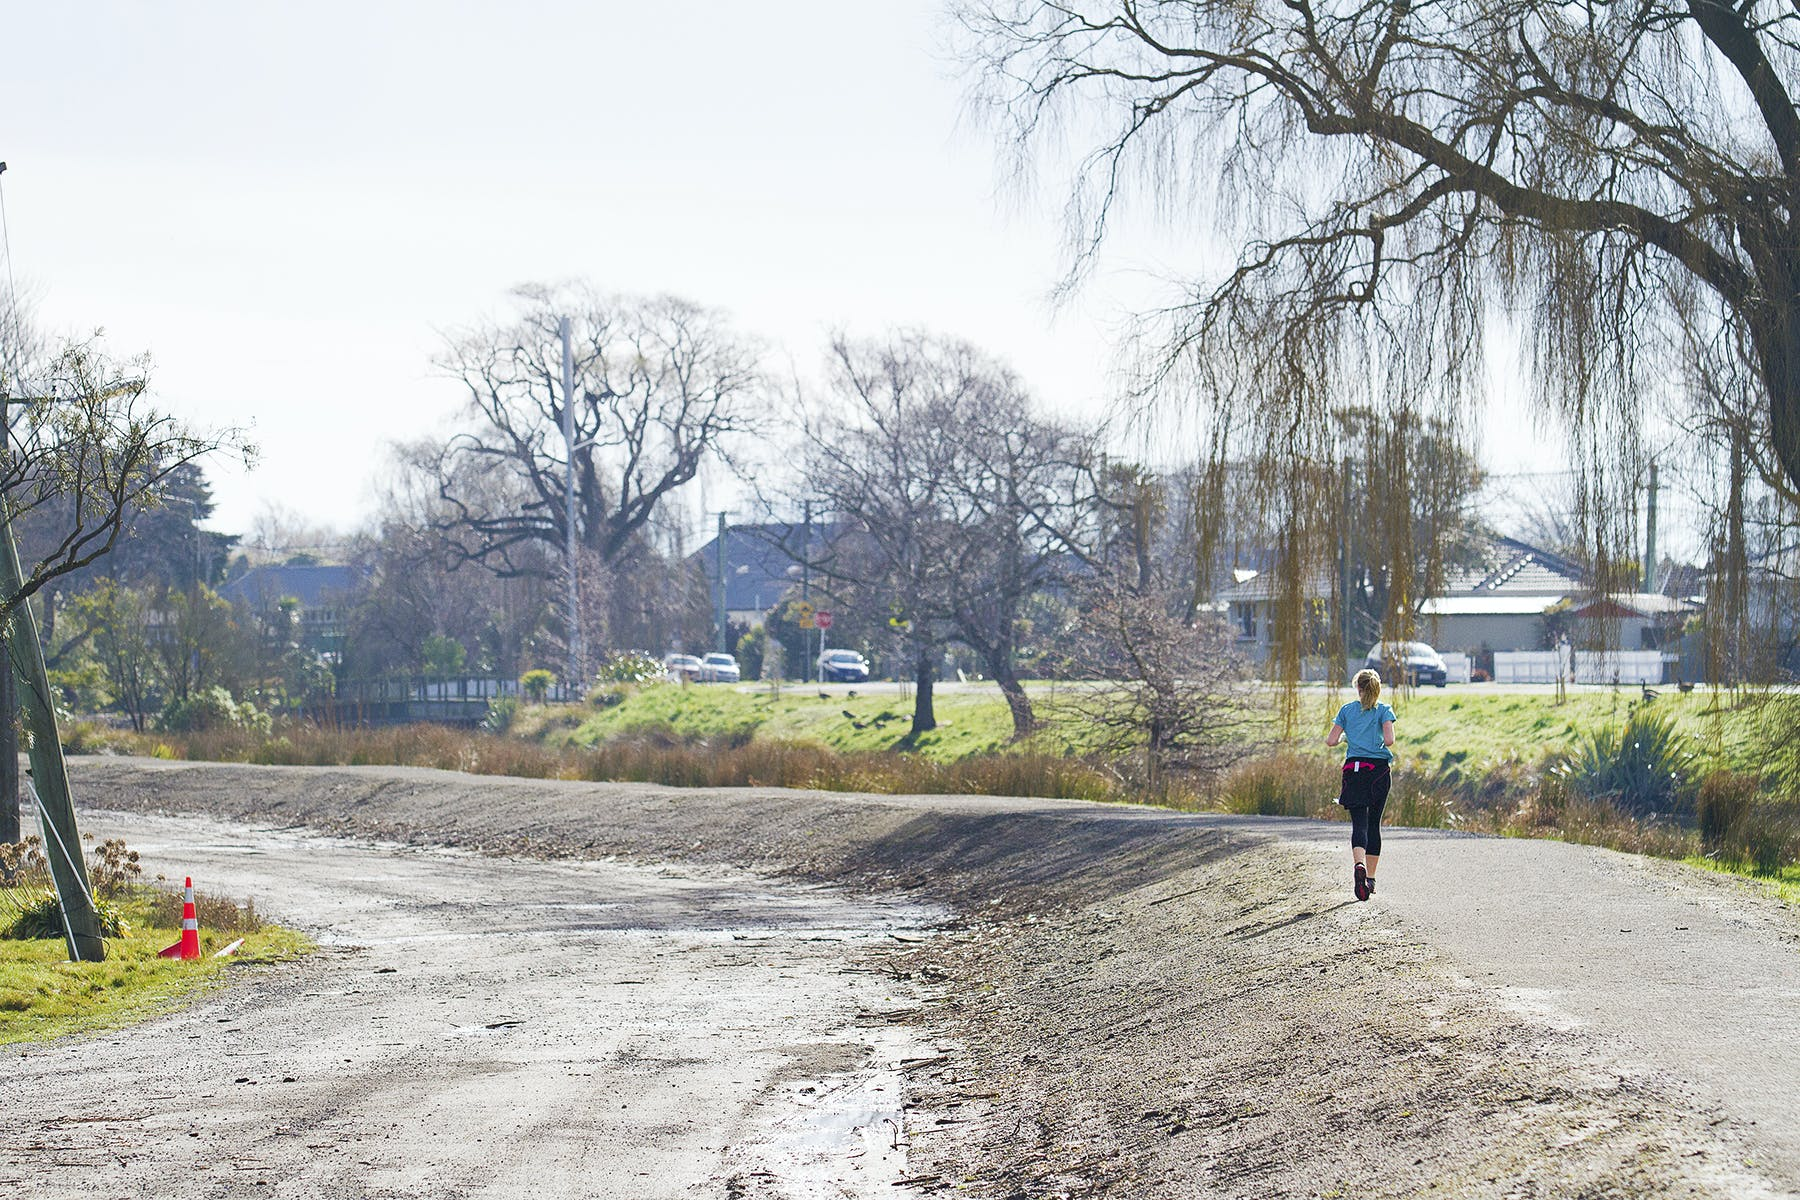 Jogger in the Ōtākaro Avon River Corridor Regeneration Area.